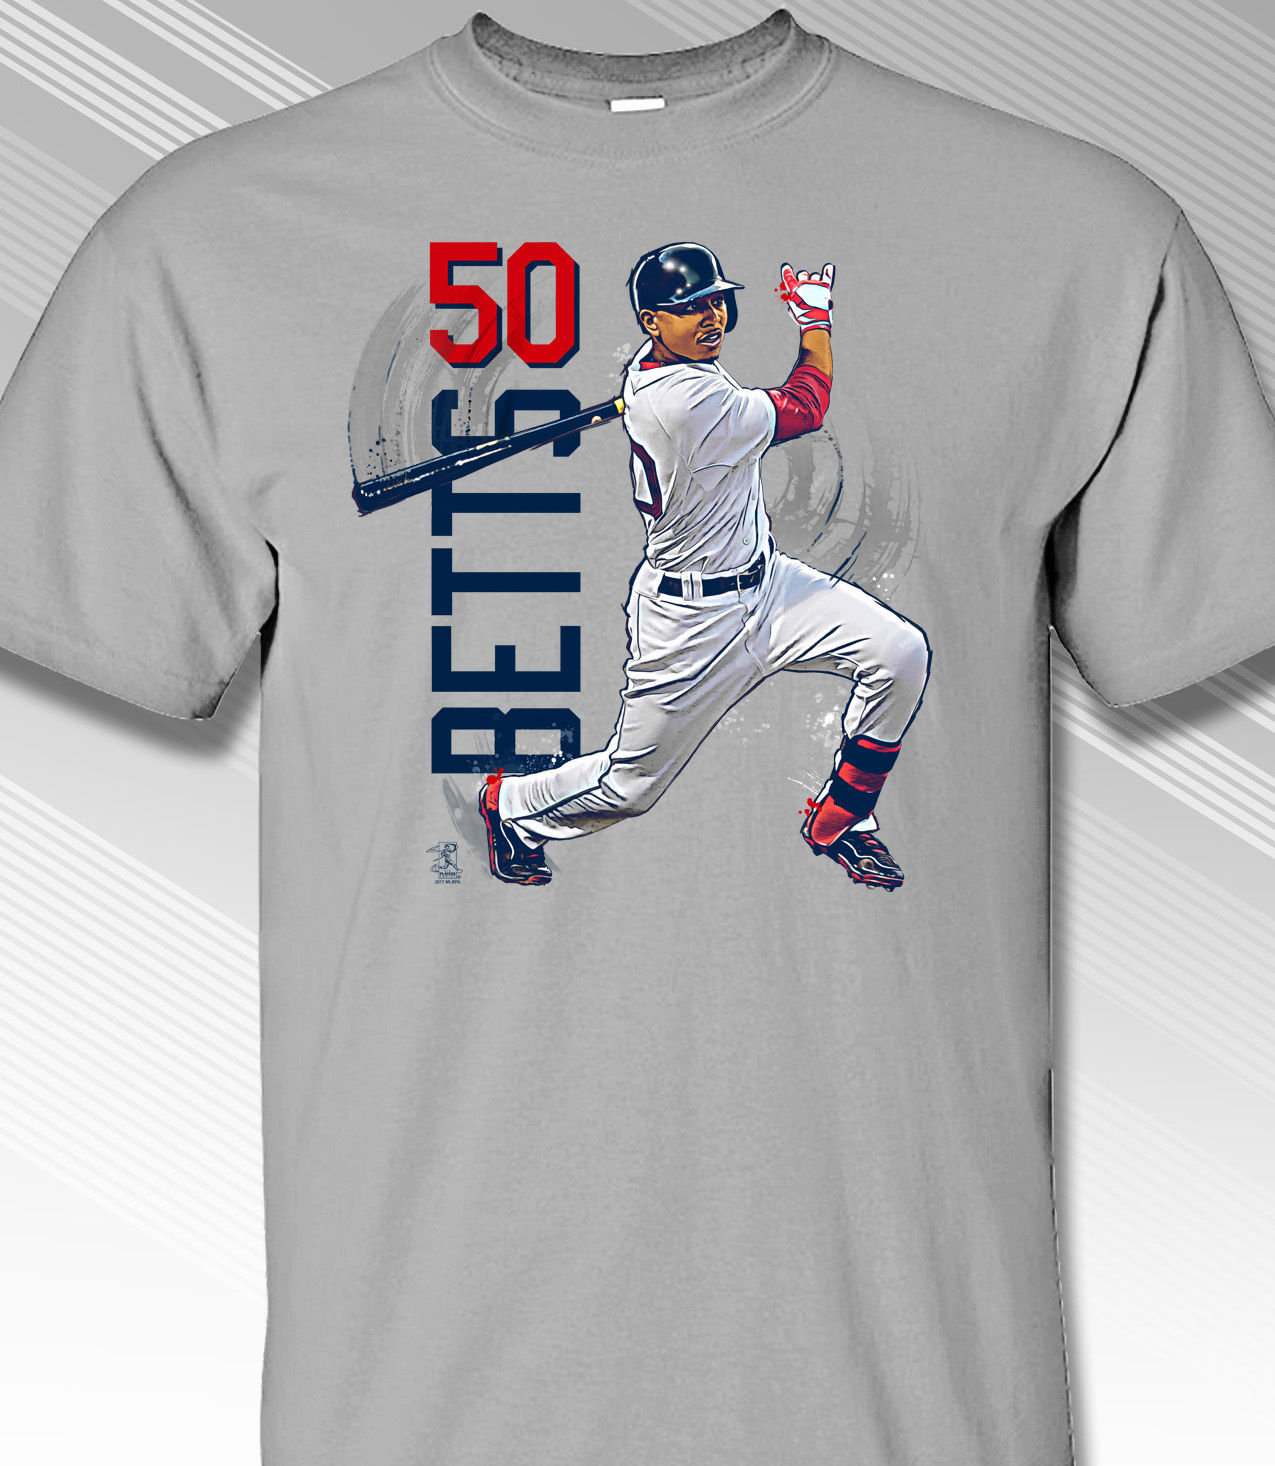 Mookie Betts Swing in Motion Boston 50 T-Shirt<br>Short or Long Sleeve<br>Youth Med to Adult 4X